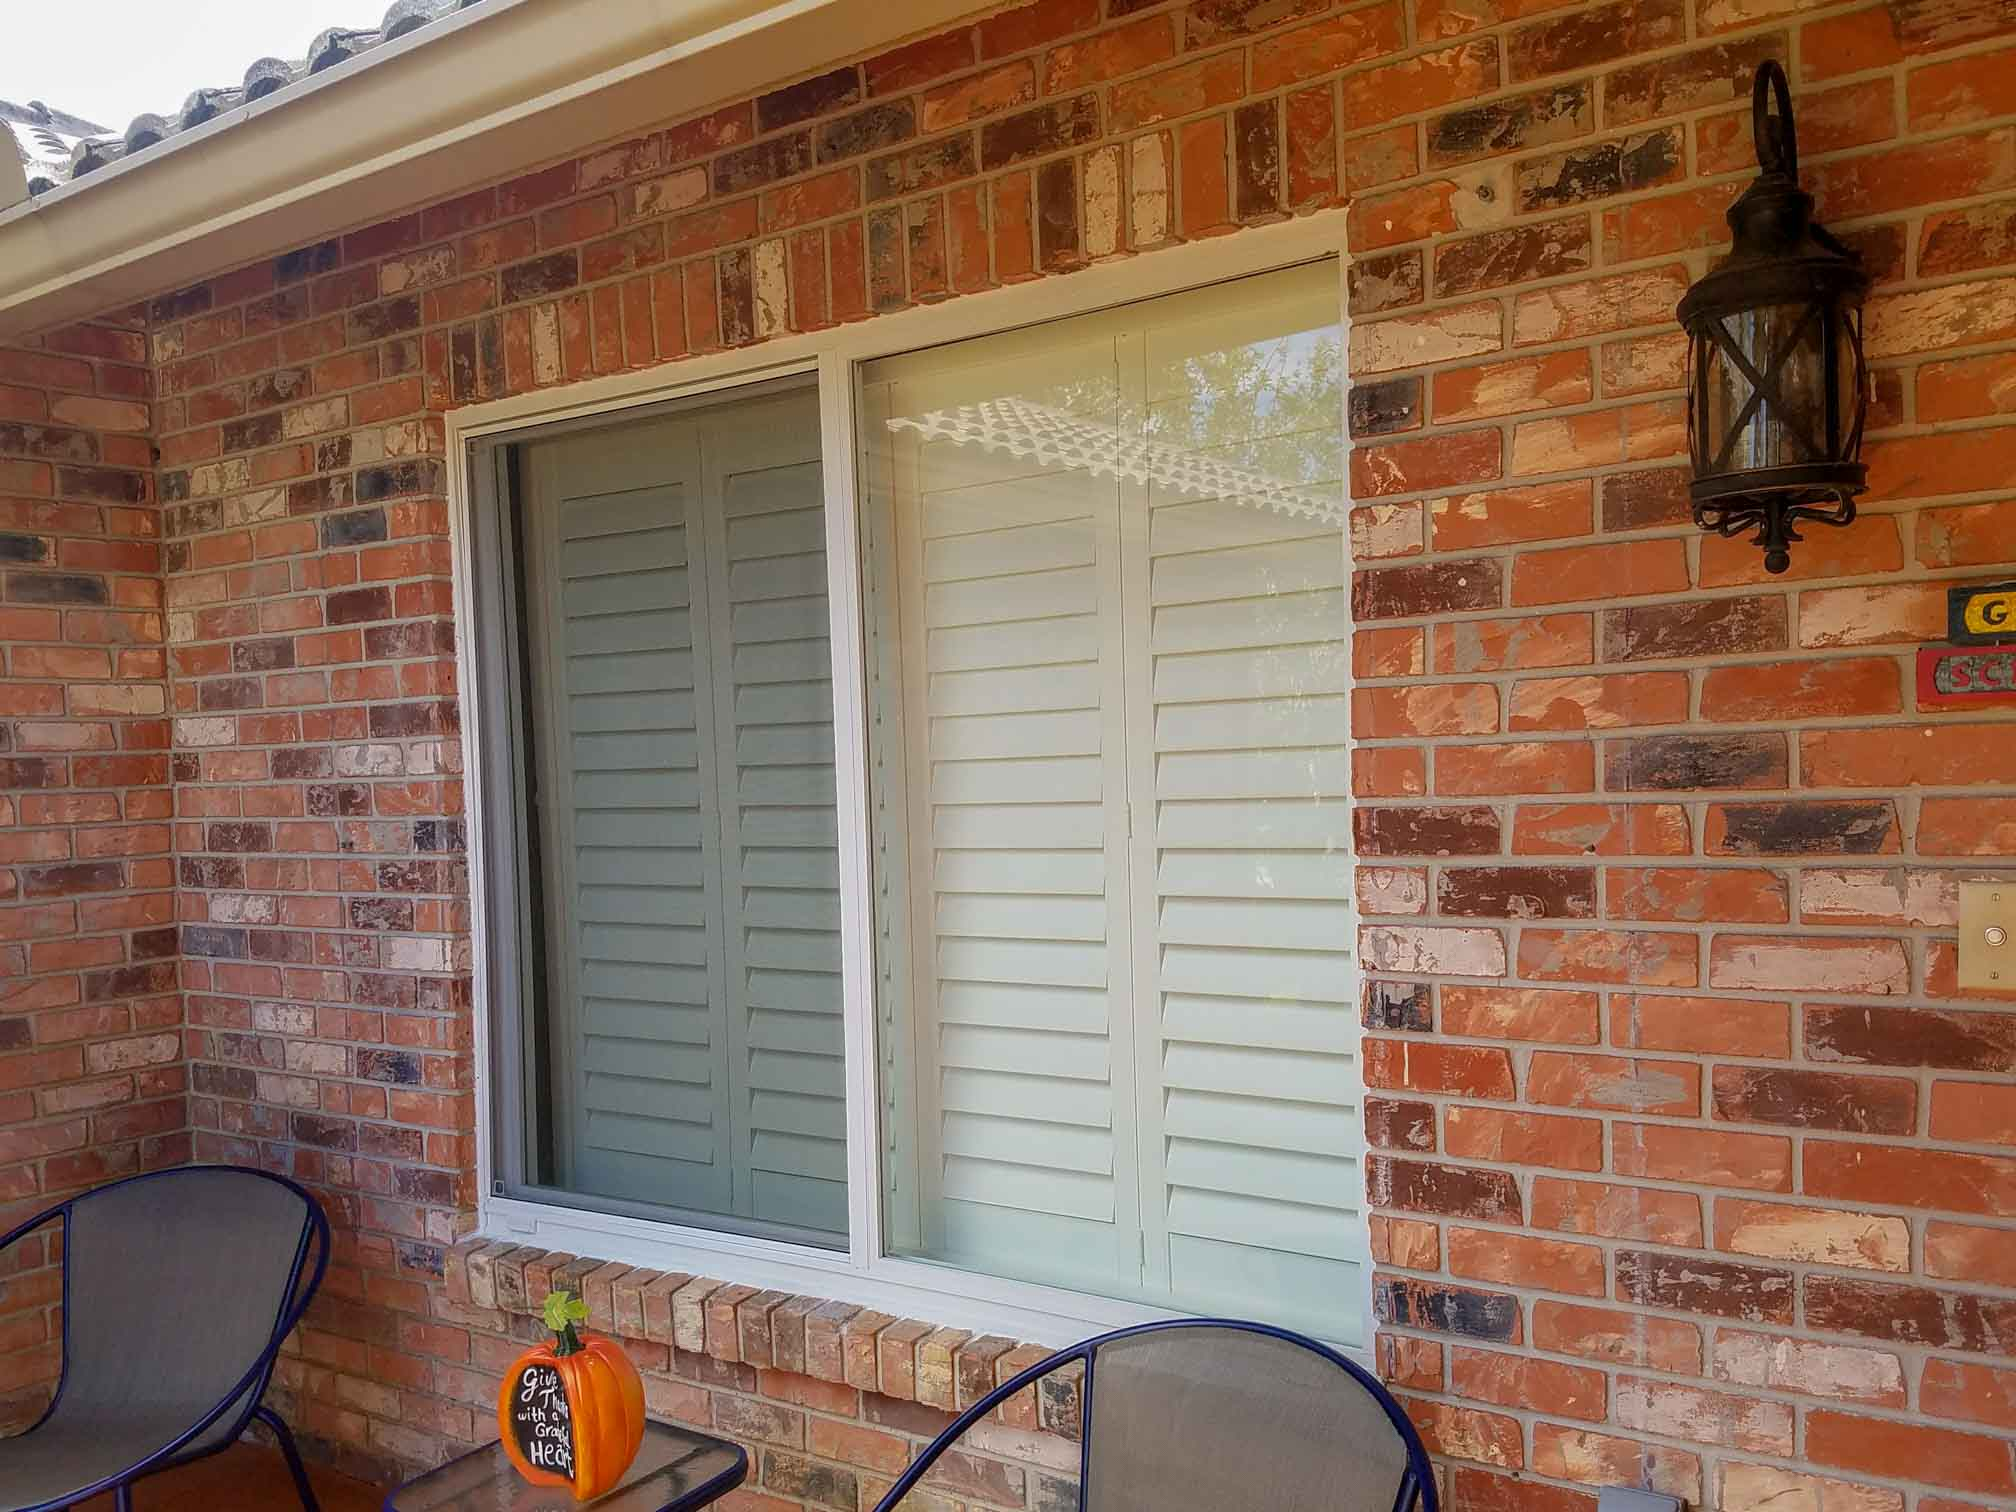 plantation shutters gallery PLANTATION SHUTTERS GALLERY 20171013 143400